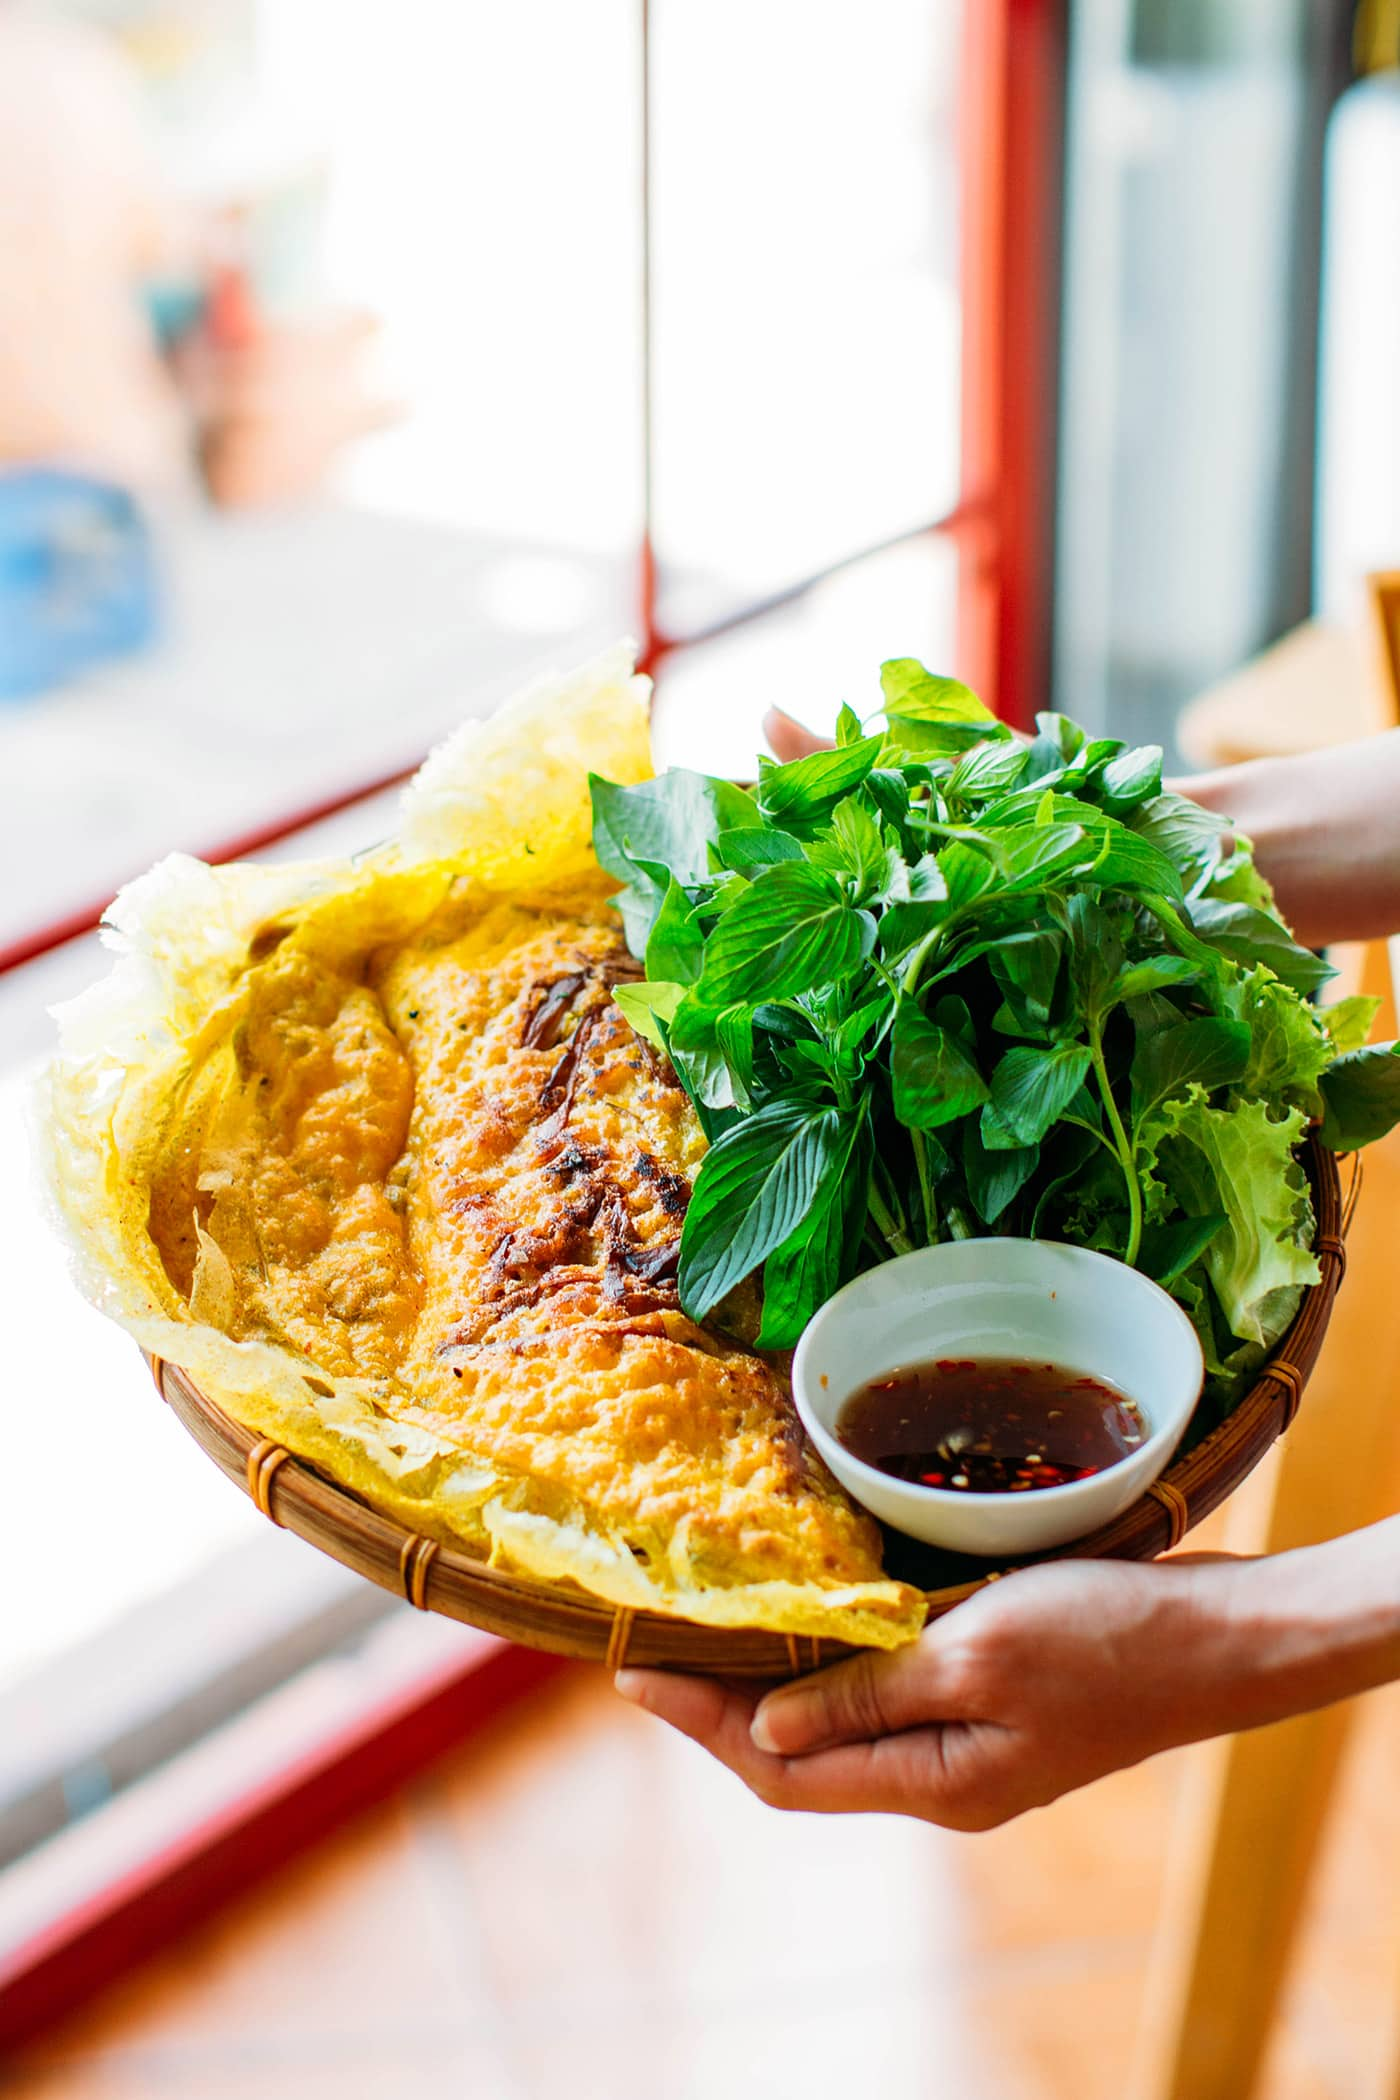 A Guide to Eating Vegan in Viet Nam - Banh Xeo